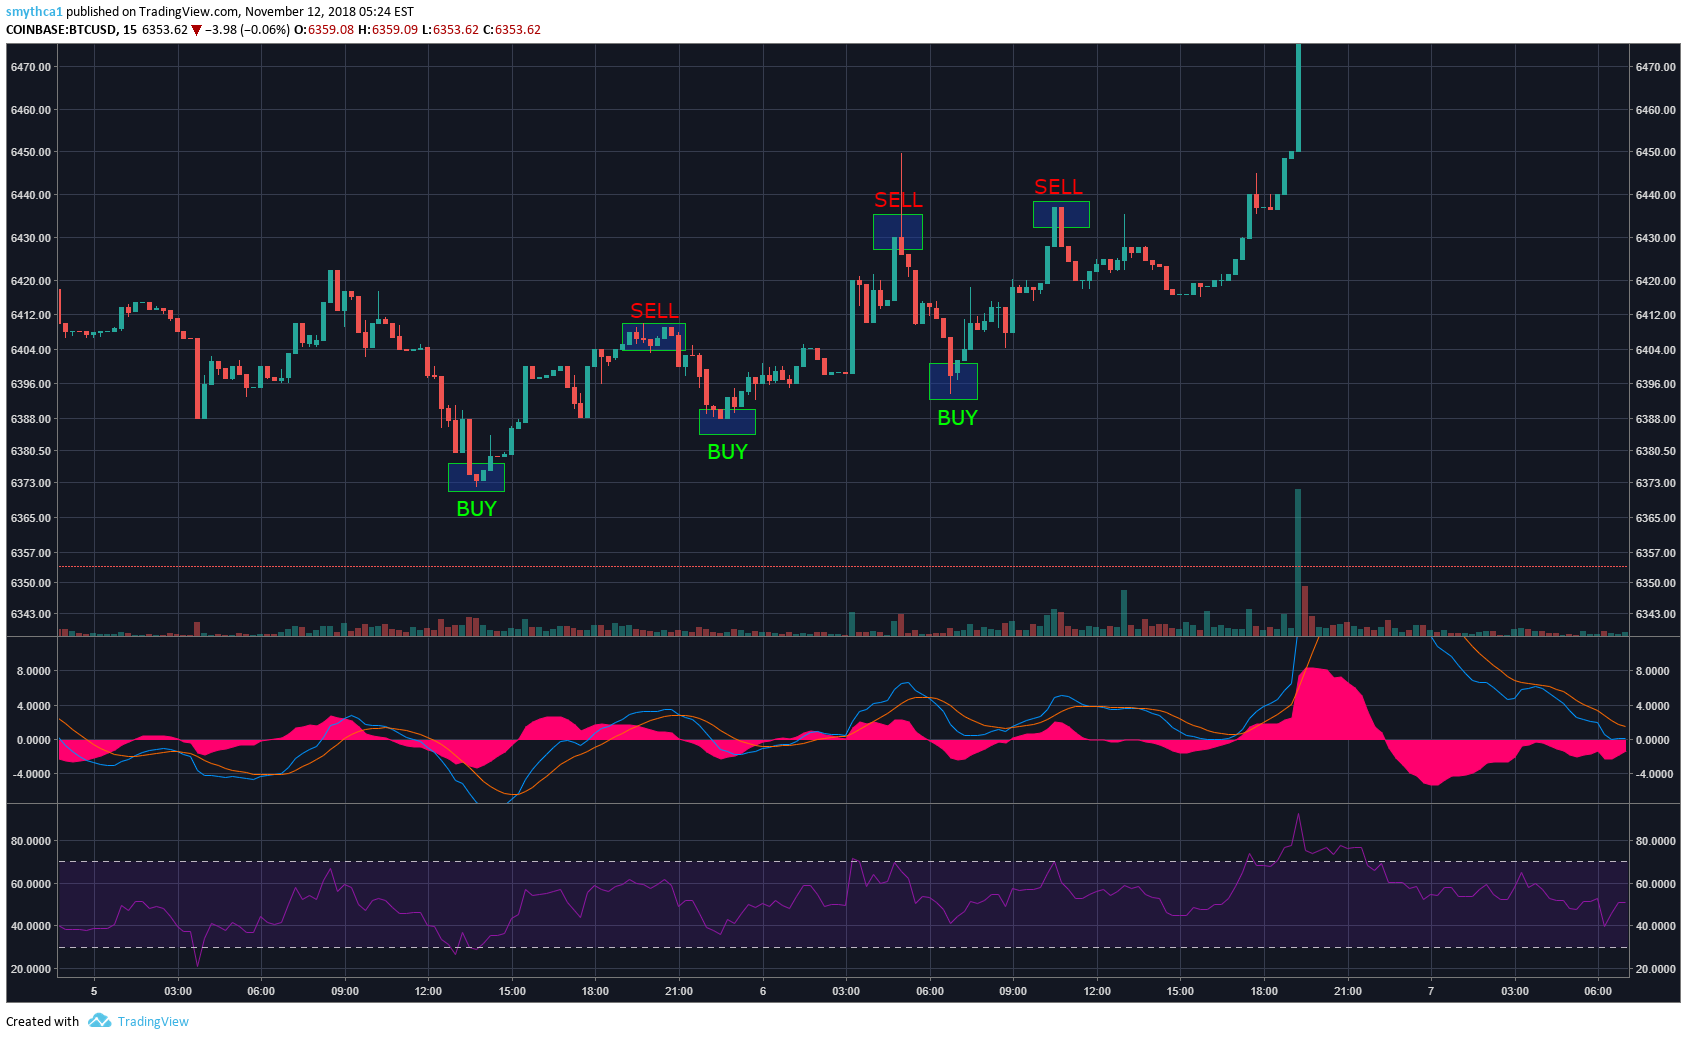 Bitcoin/USD graph illustrating three trades executed within a 21 hour timeframe with a total profit of approximately 1.8%.